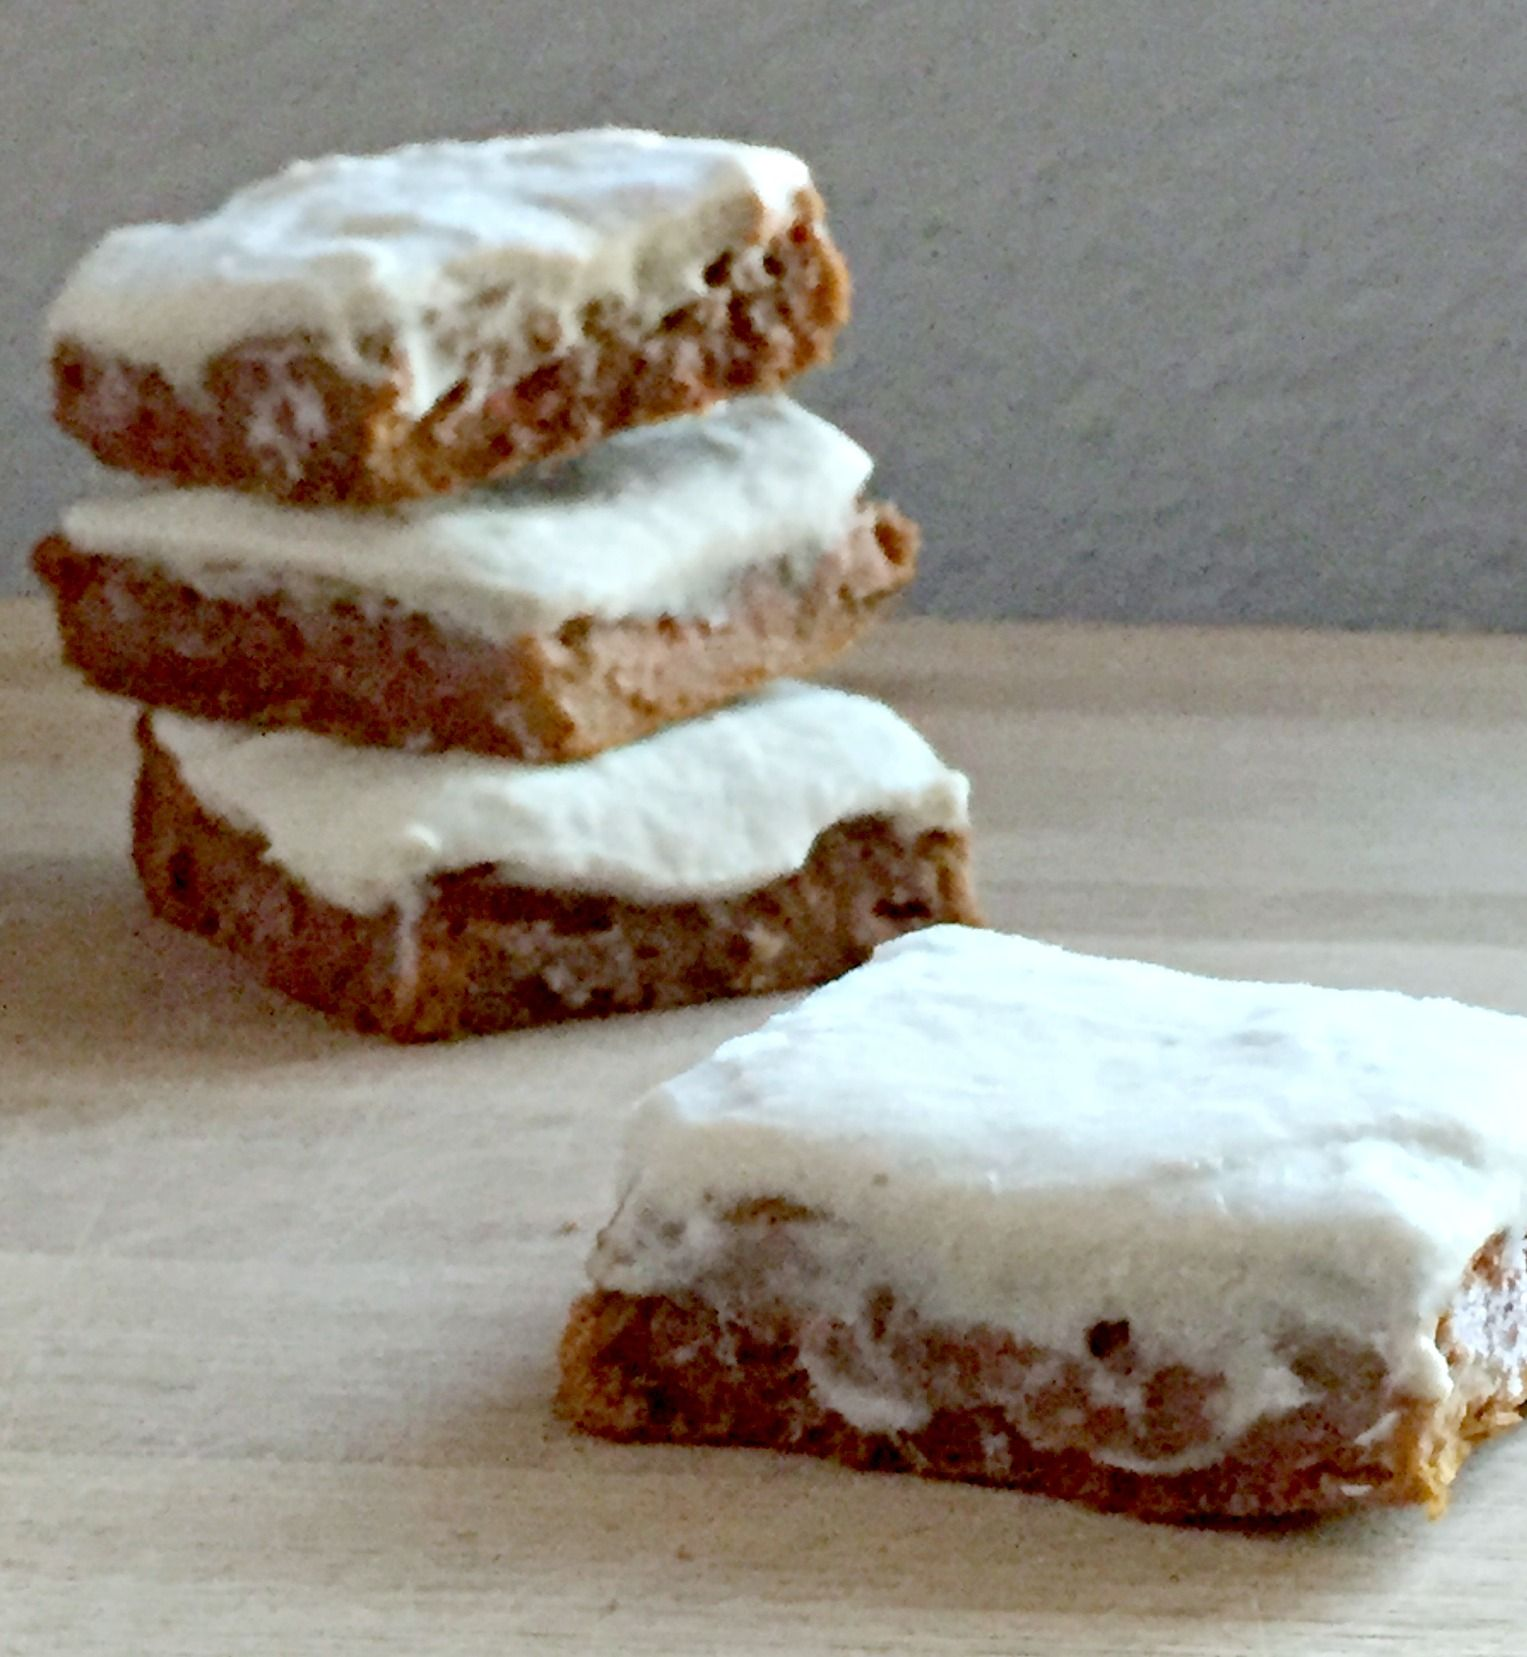 Pumpkin pie or carrot cake? These protein bars offer both! Get out your protein powder & make these better for you treats with Greek yogurt frosting! #protein #lowcarb #sugarfree #glutenfree